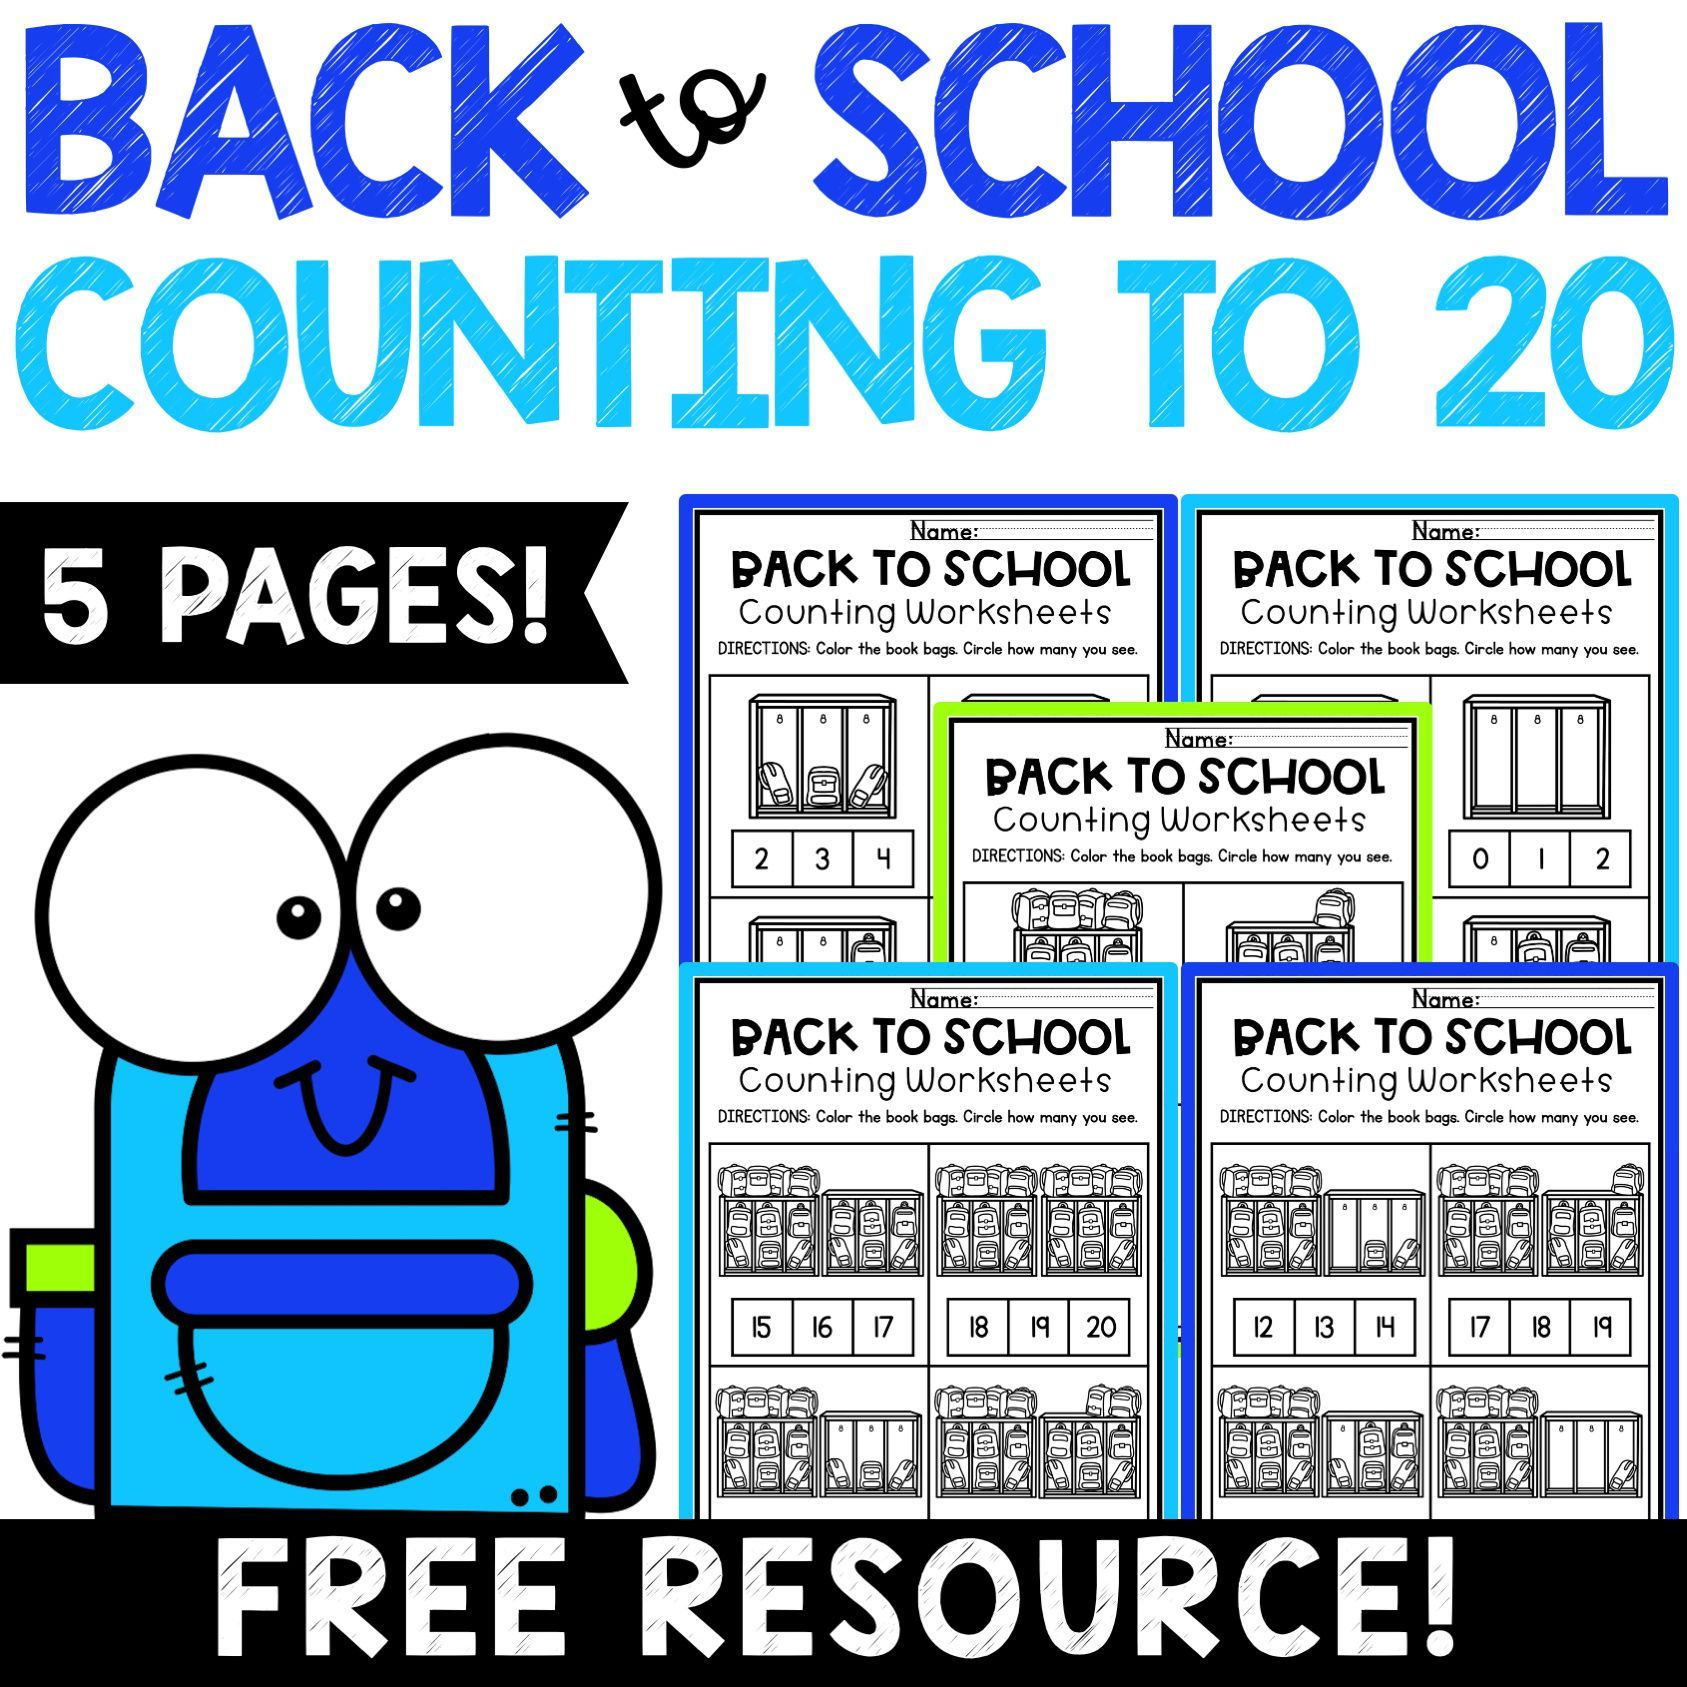 Back To School Counting To 20 Worksheets In